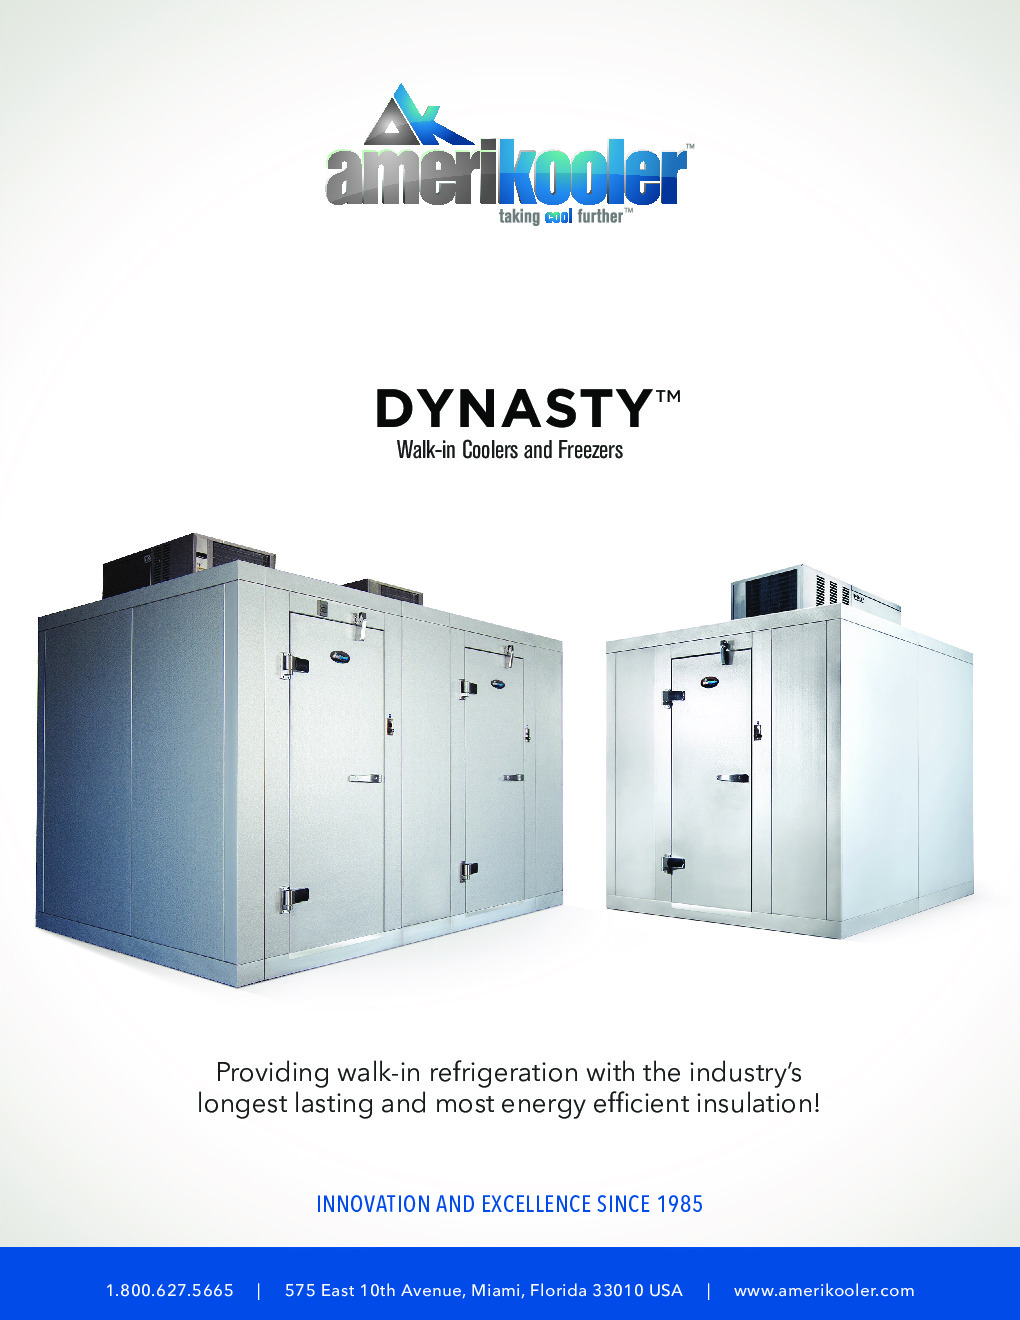 AmeriKooler DW091577N-6/9-RM 9' X 15' Walk-In Cooler, 9' L Cooler without Floor and 6' L Freezer, Remote